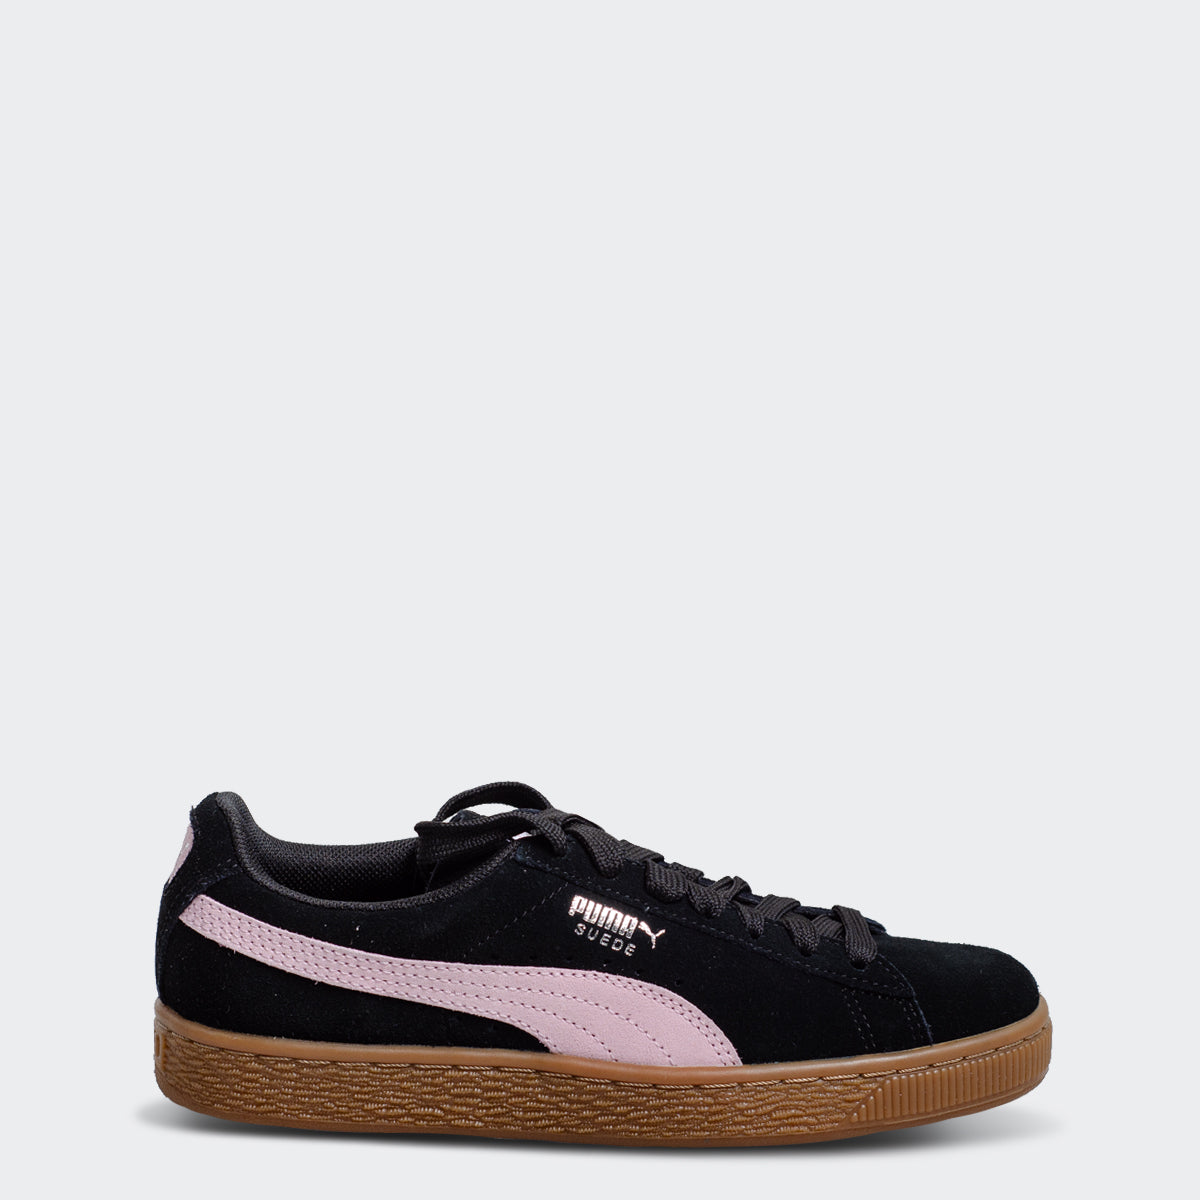 PUMA Suede Classic Sneakers Black Pink 35546286 | Chicago ...